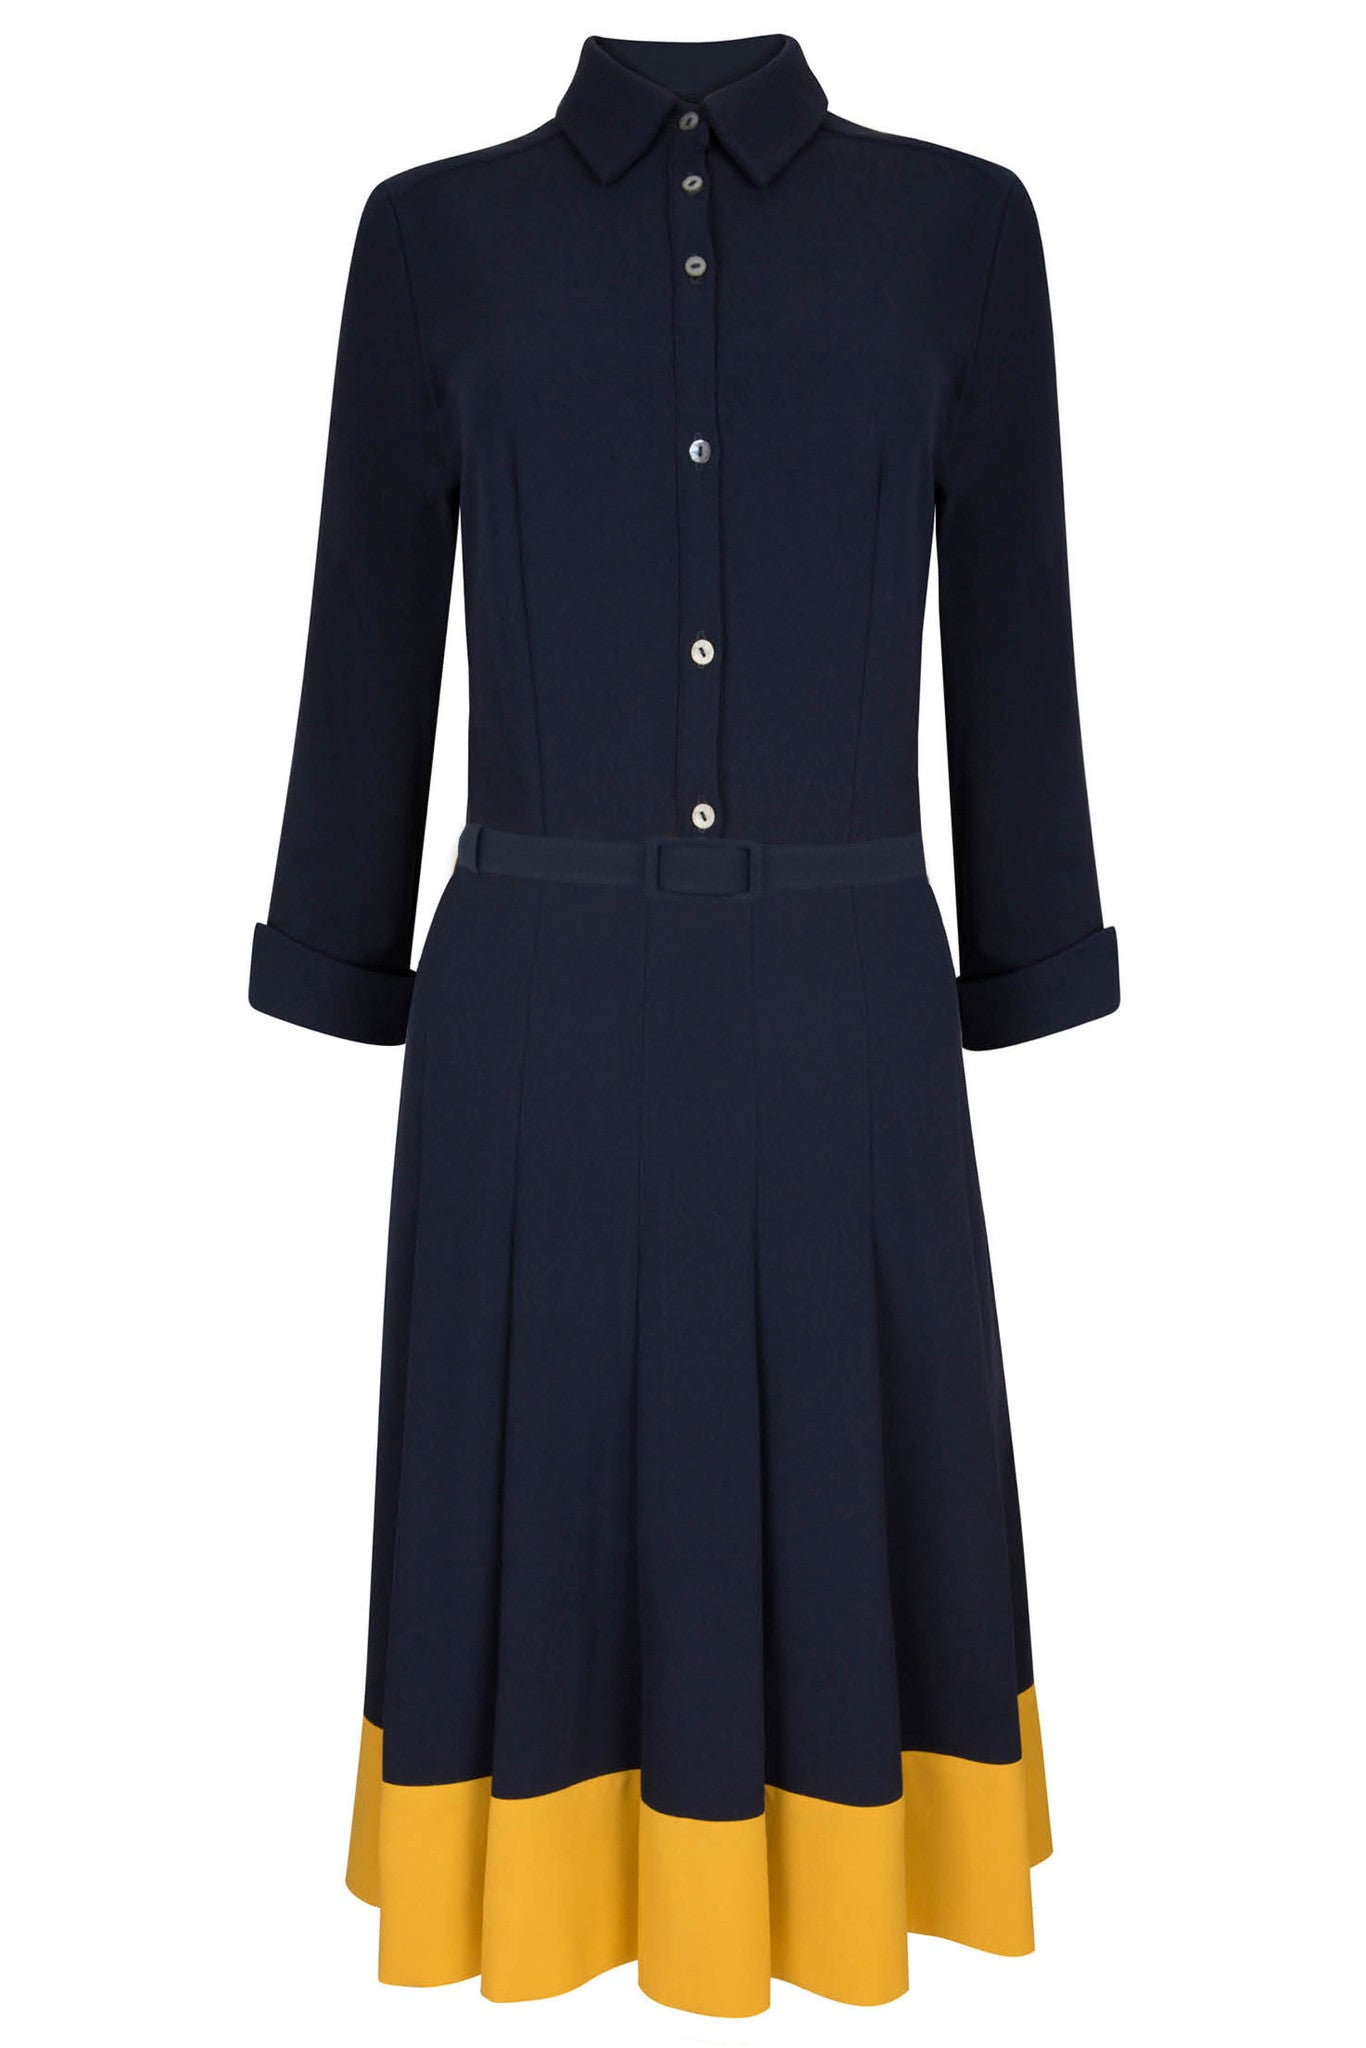 Lewis Navy & Yellow Shirt Dress